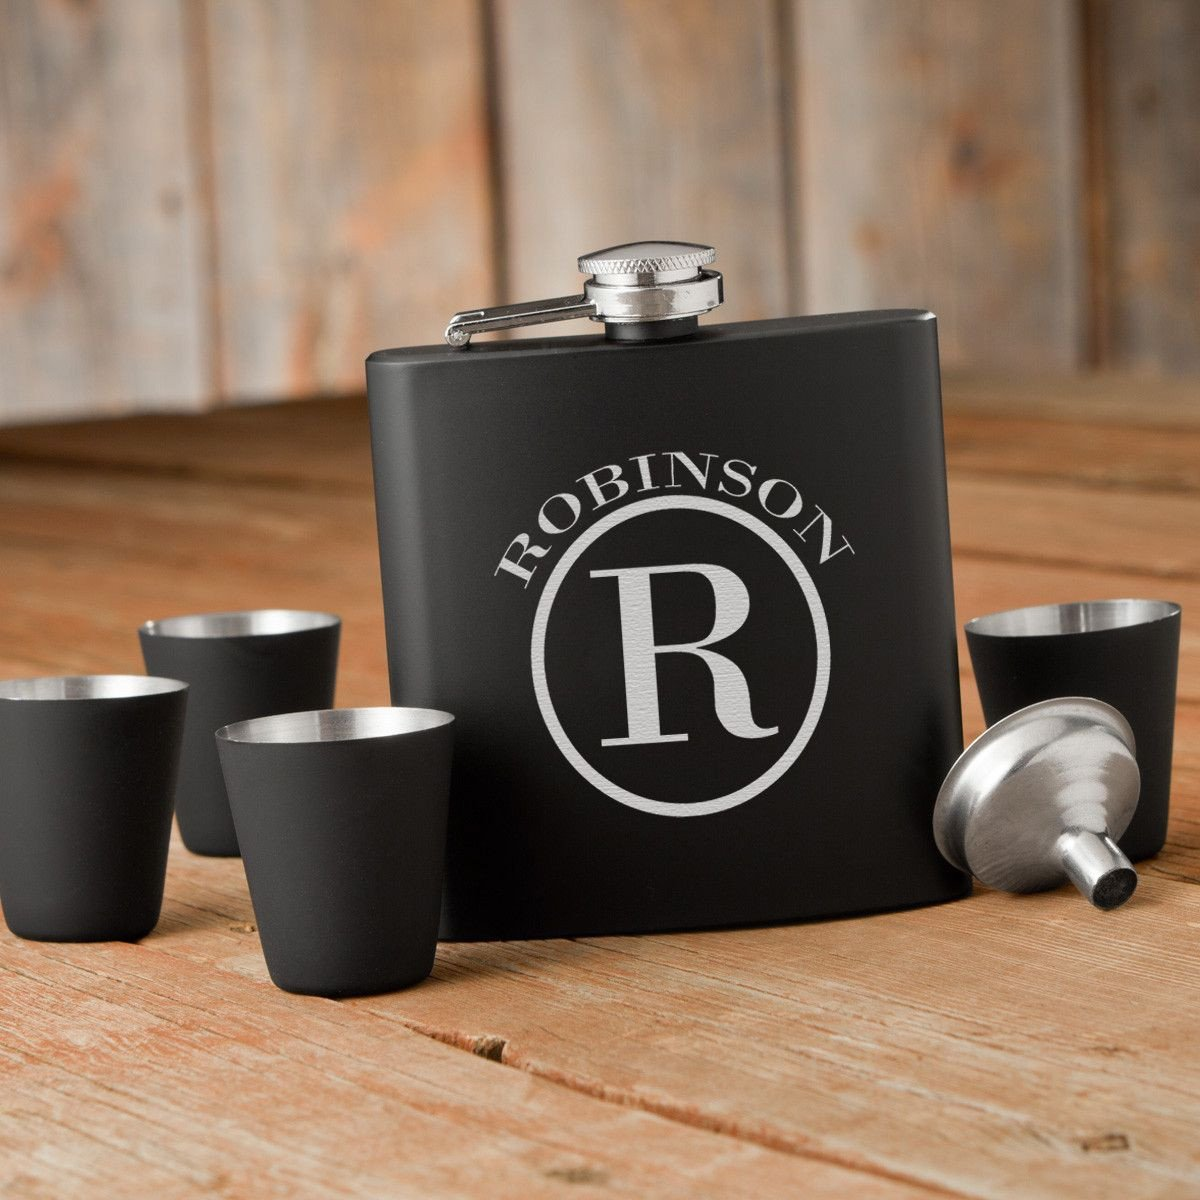 Personalized Flasks - 4 Shot Glasses - Gift Box Set - 6 oz.